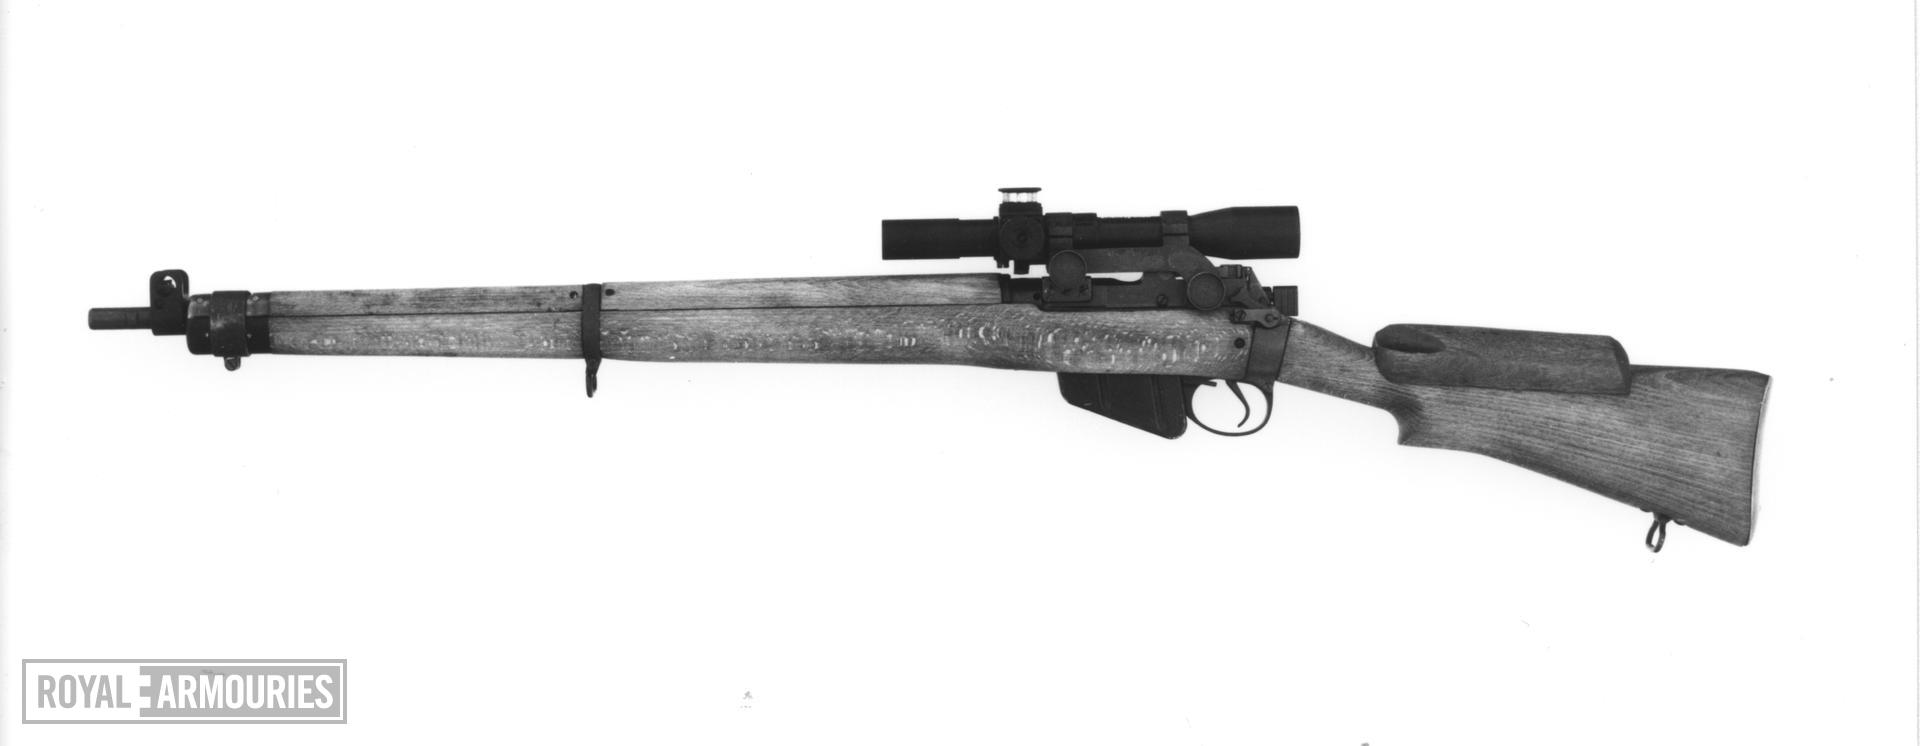 Centrefire bolt-action magazine sniper rifle - Enfield No. 4 (T)